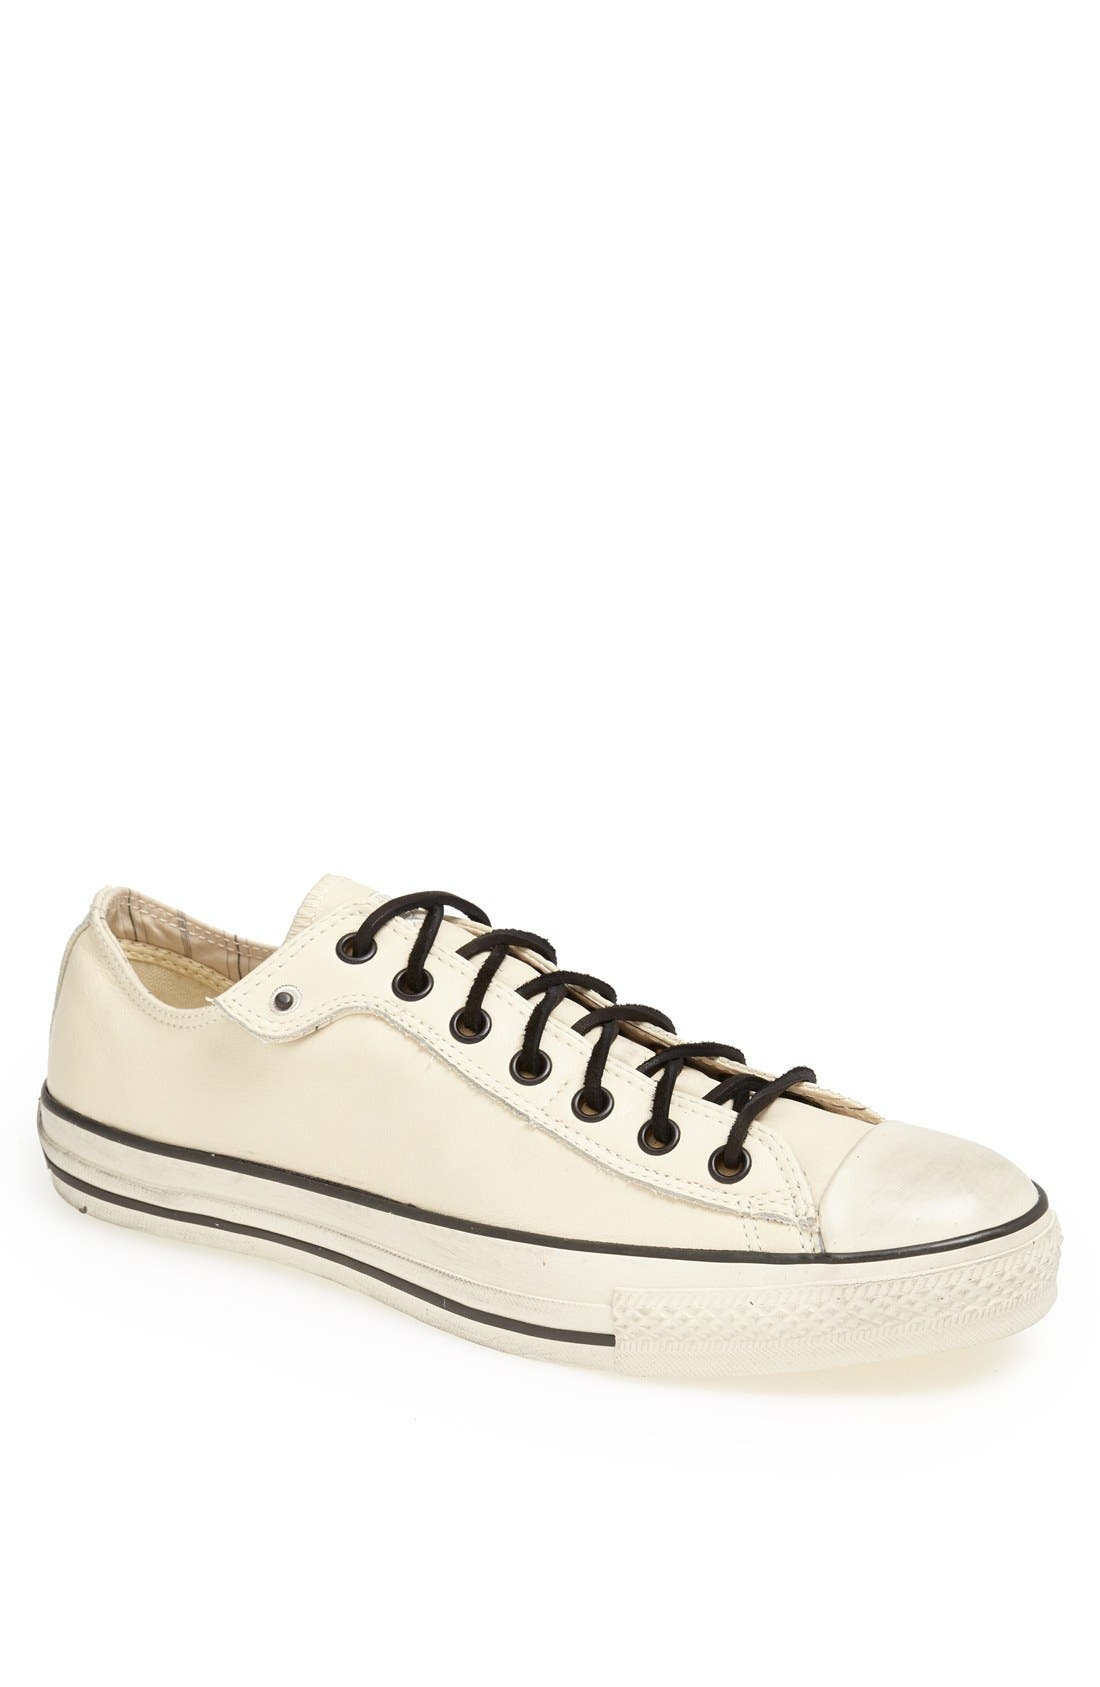 Alternate Image 1 Selected - Converse by John Varvatos Chuck Taylor® All Star® Sneaker